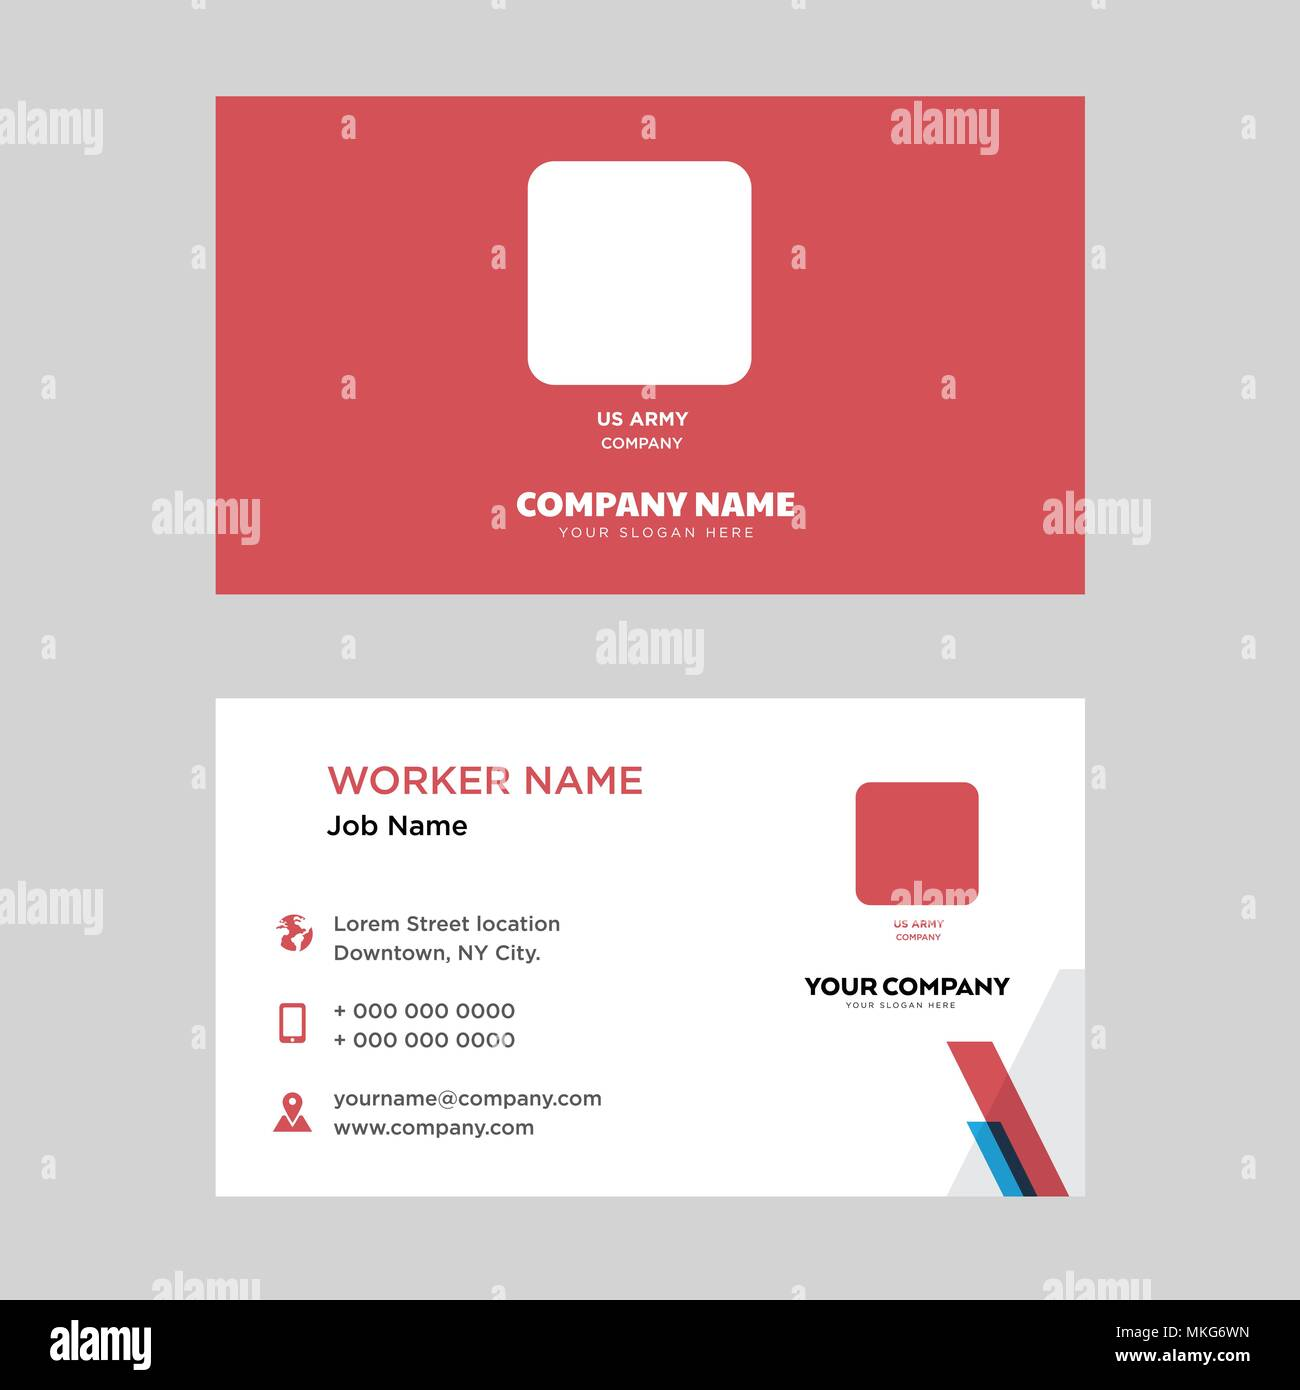 Us Army Business Card Design Template Visiting For Your Company Modern Horizontal Identity Card Vector Stock Vector Image Art Alamy